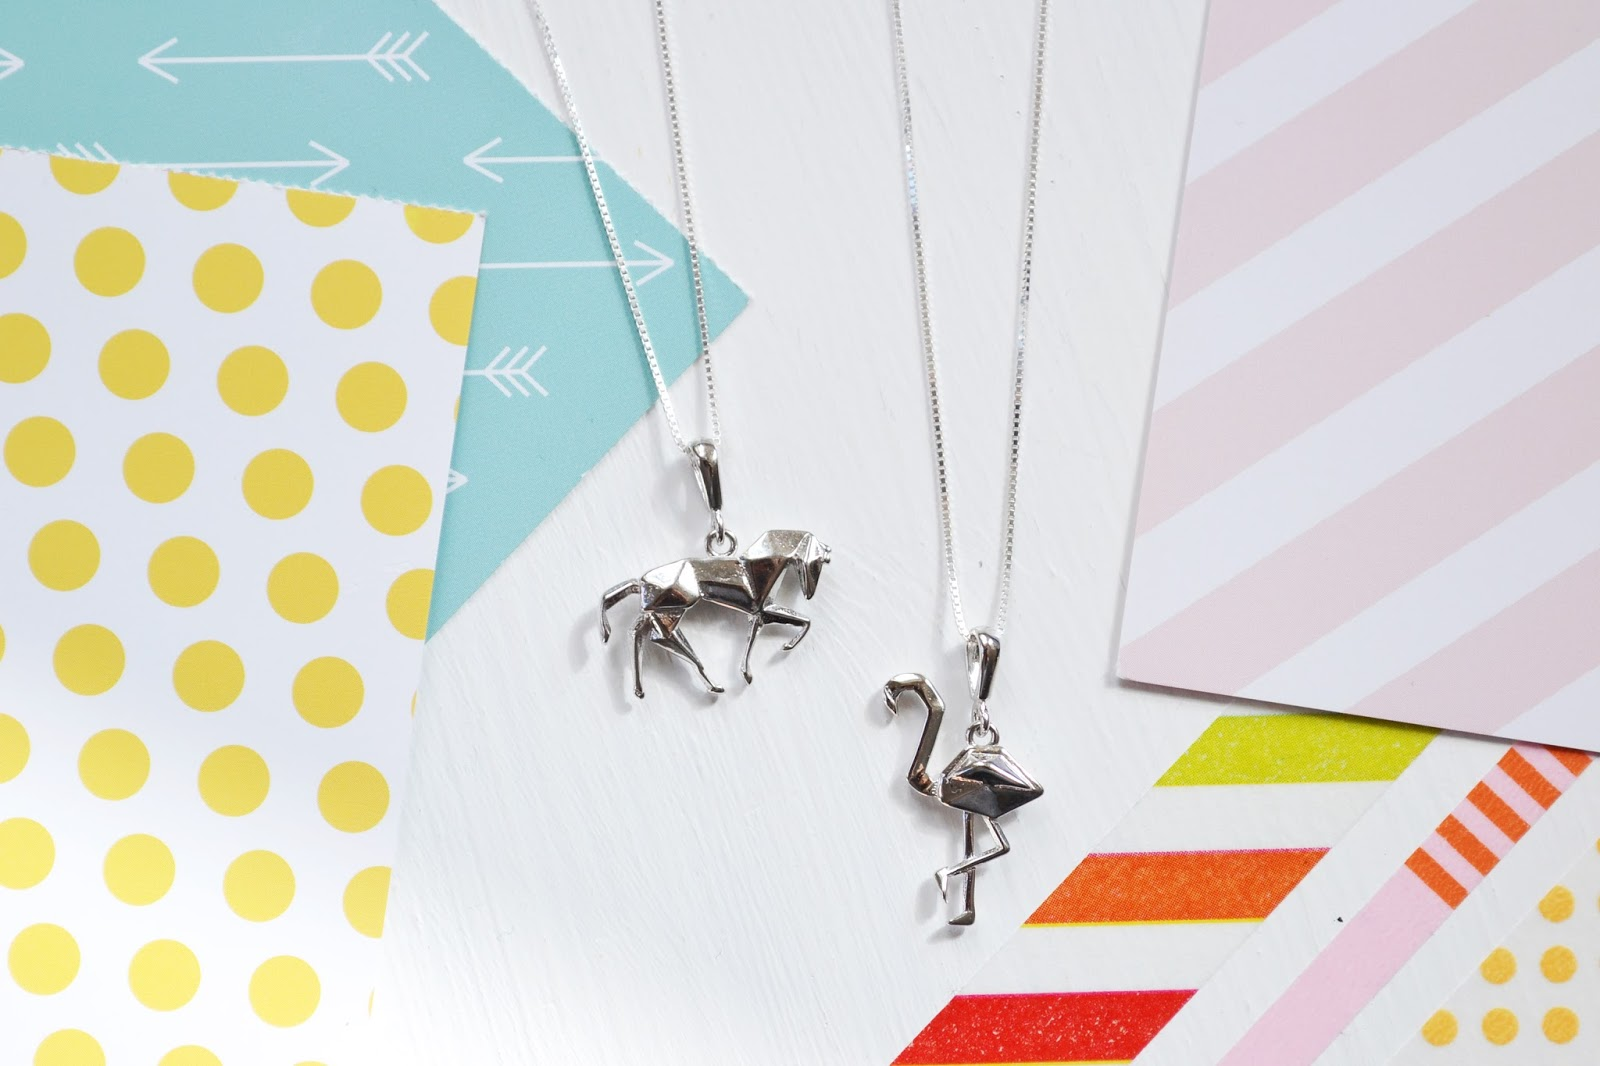 origami necklace, origami jewellery, horse charm, horse necklace, flamingo necklace